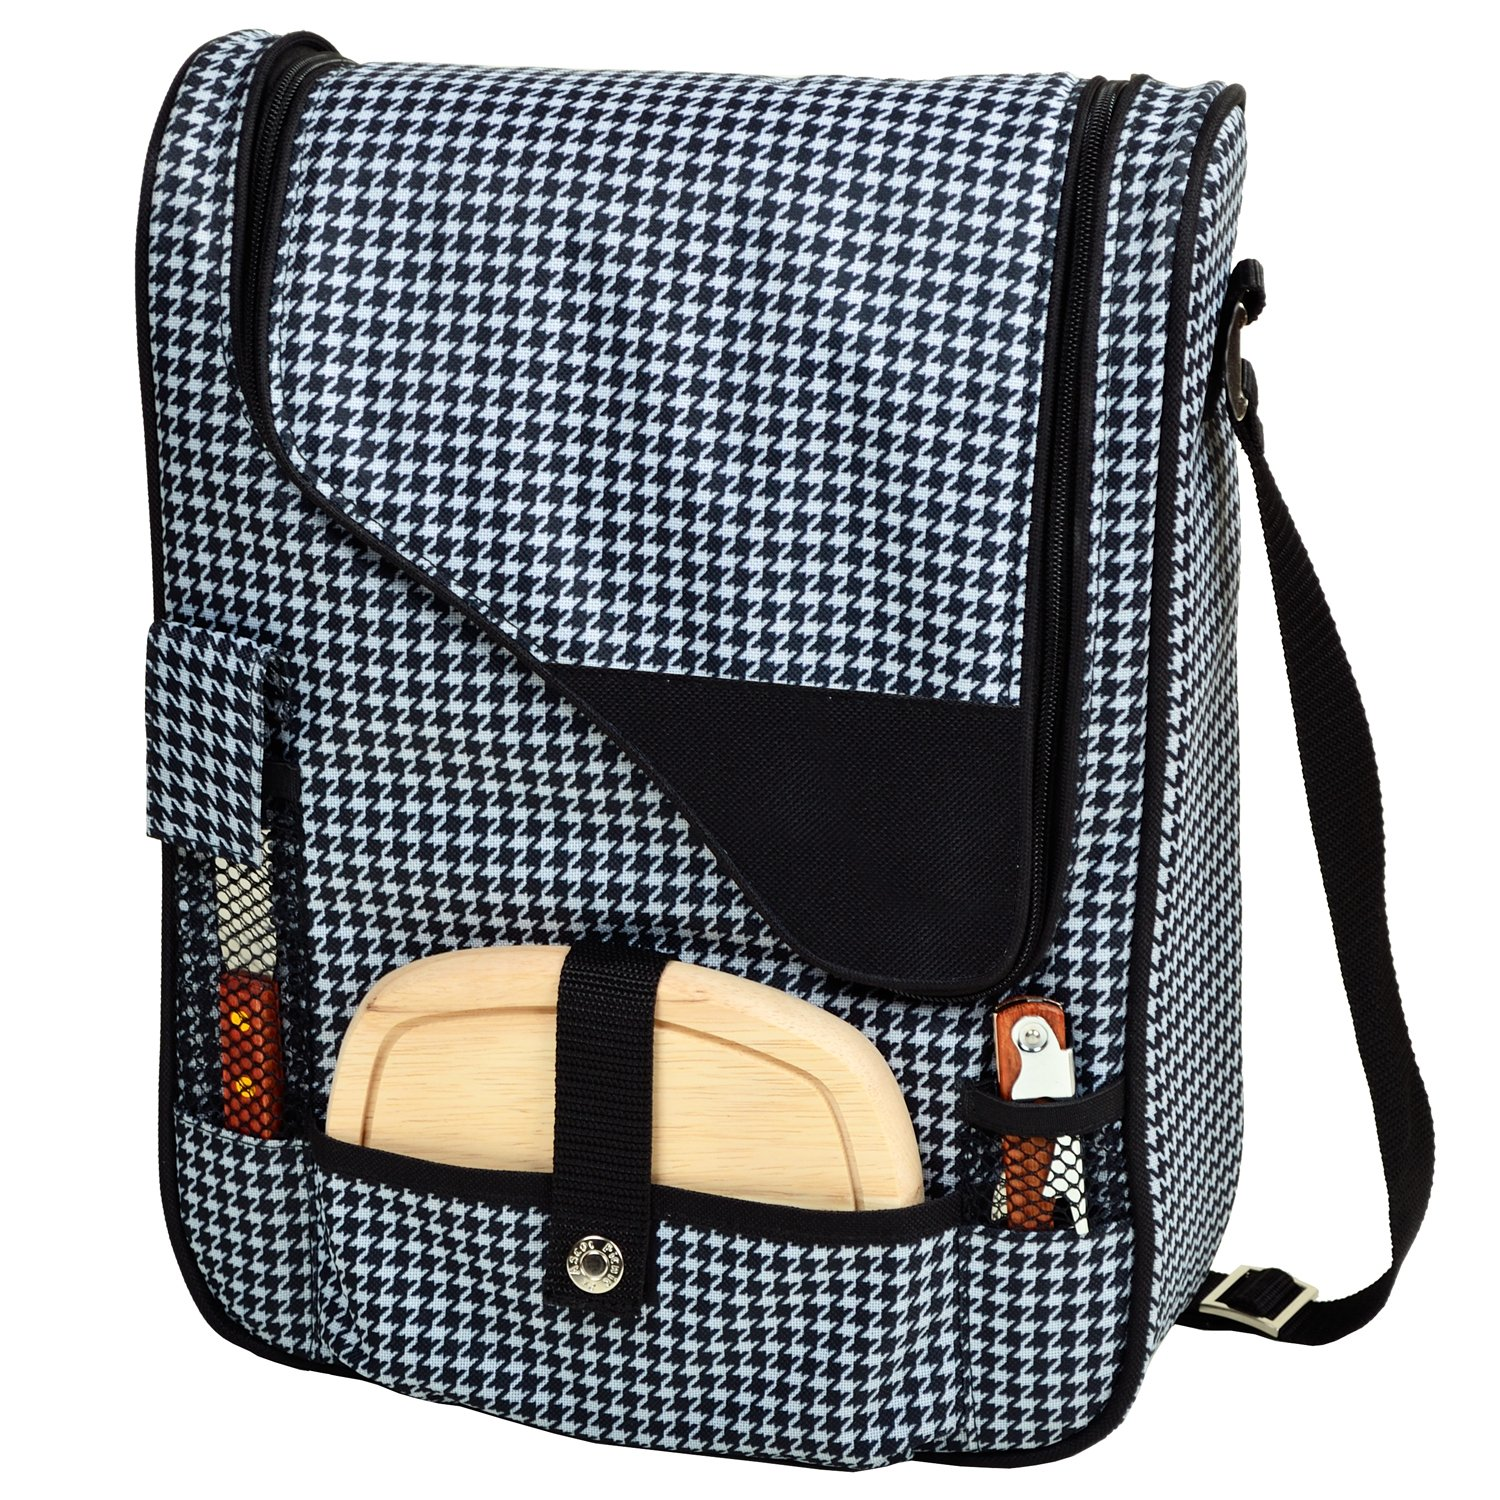 Picnic at Ascot Houndstooth Print Canvas Wine and Cheese Cooler Bag